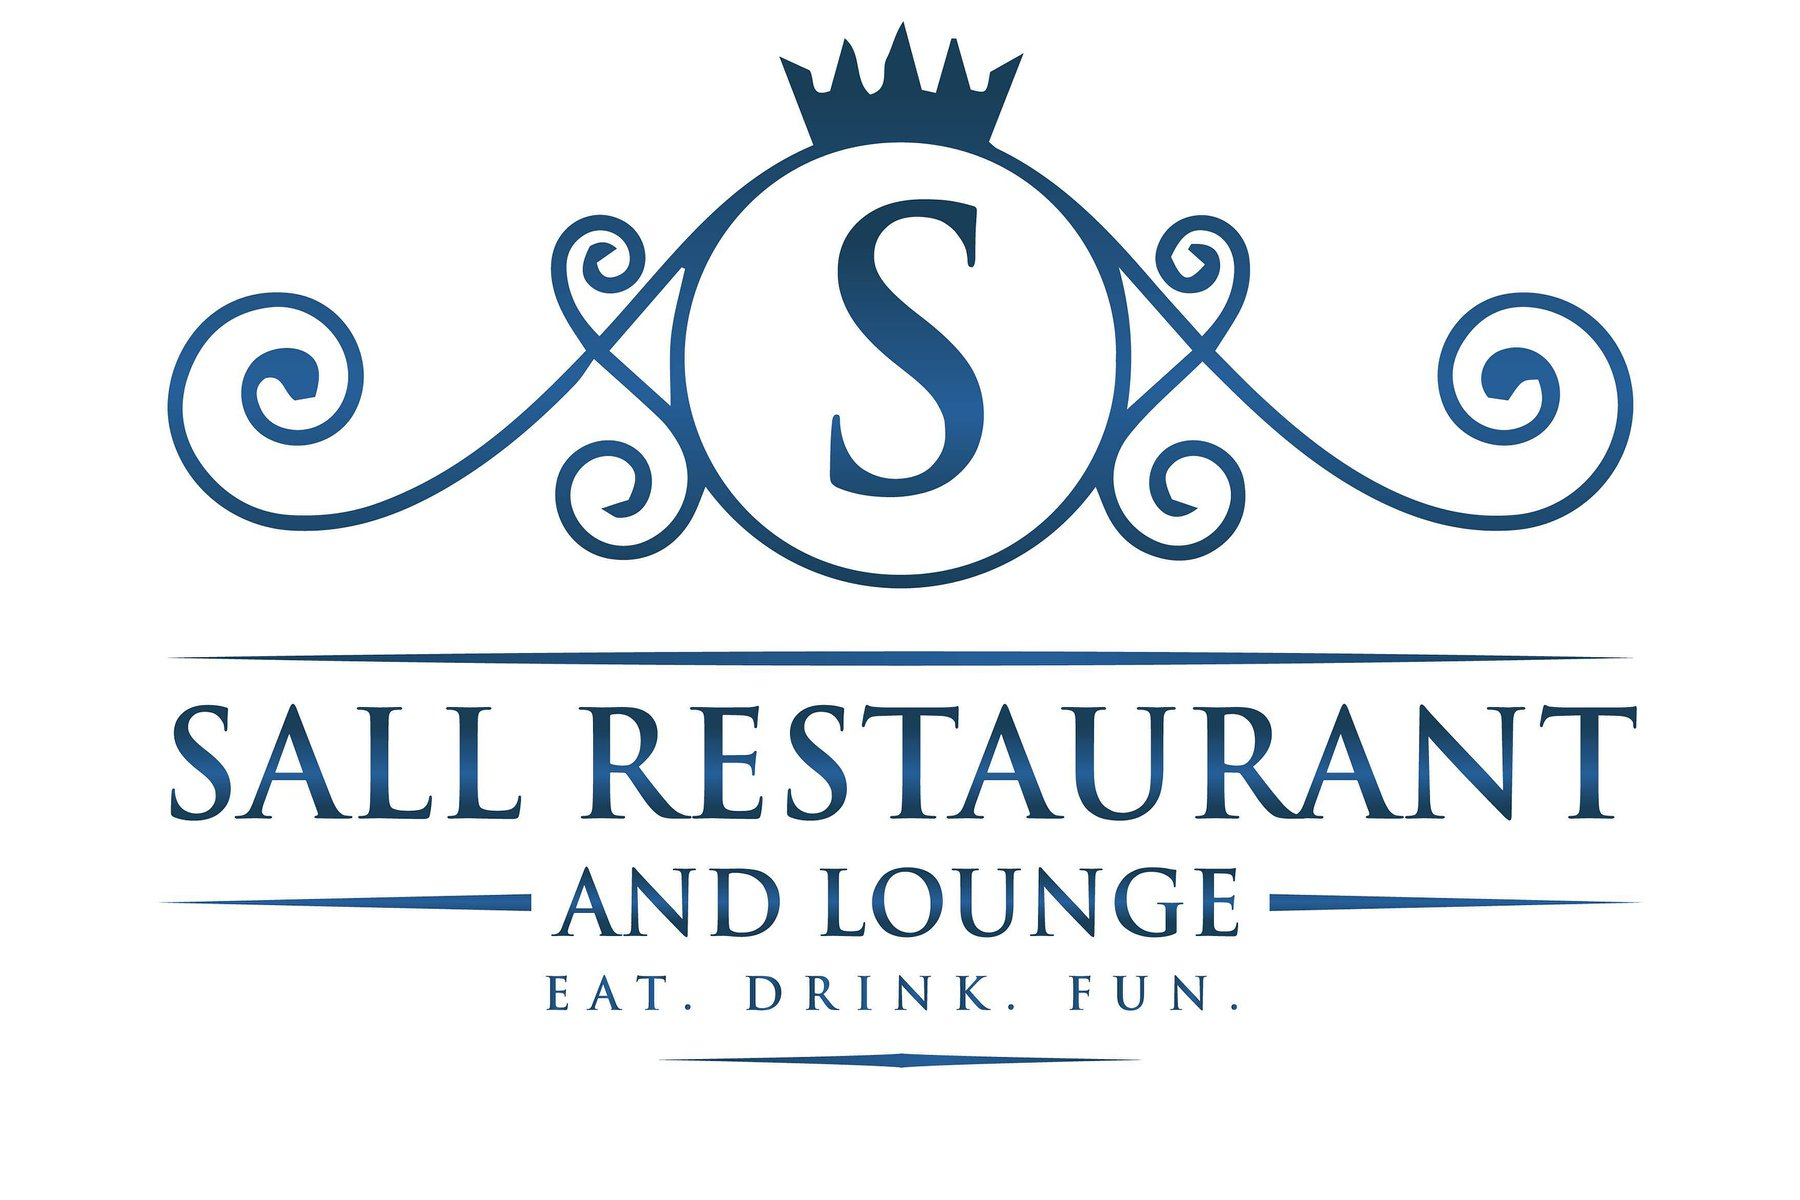 Sall Restaurant & Lounge